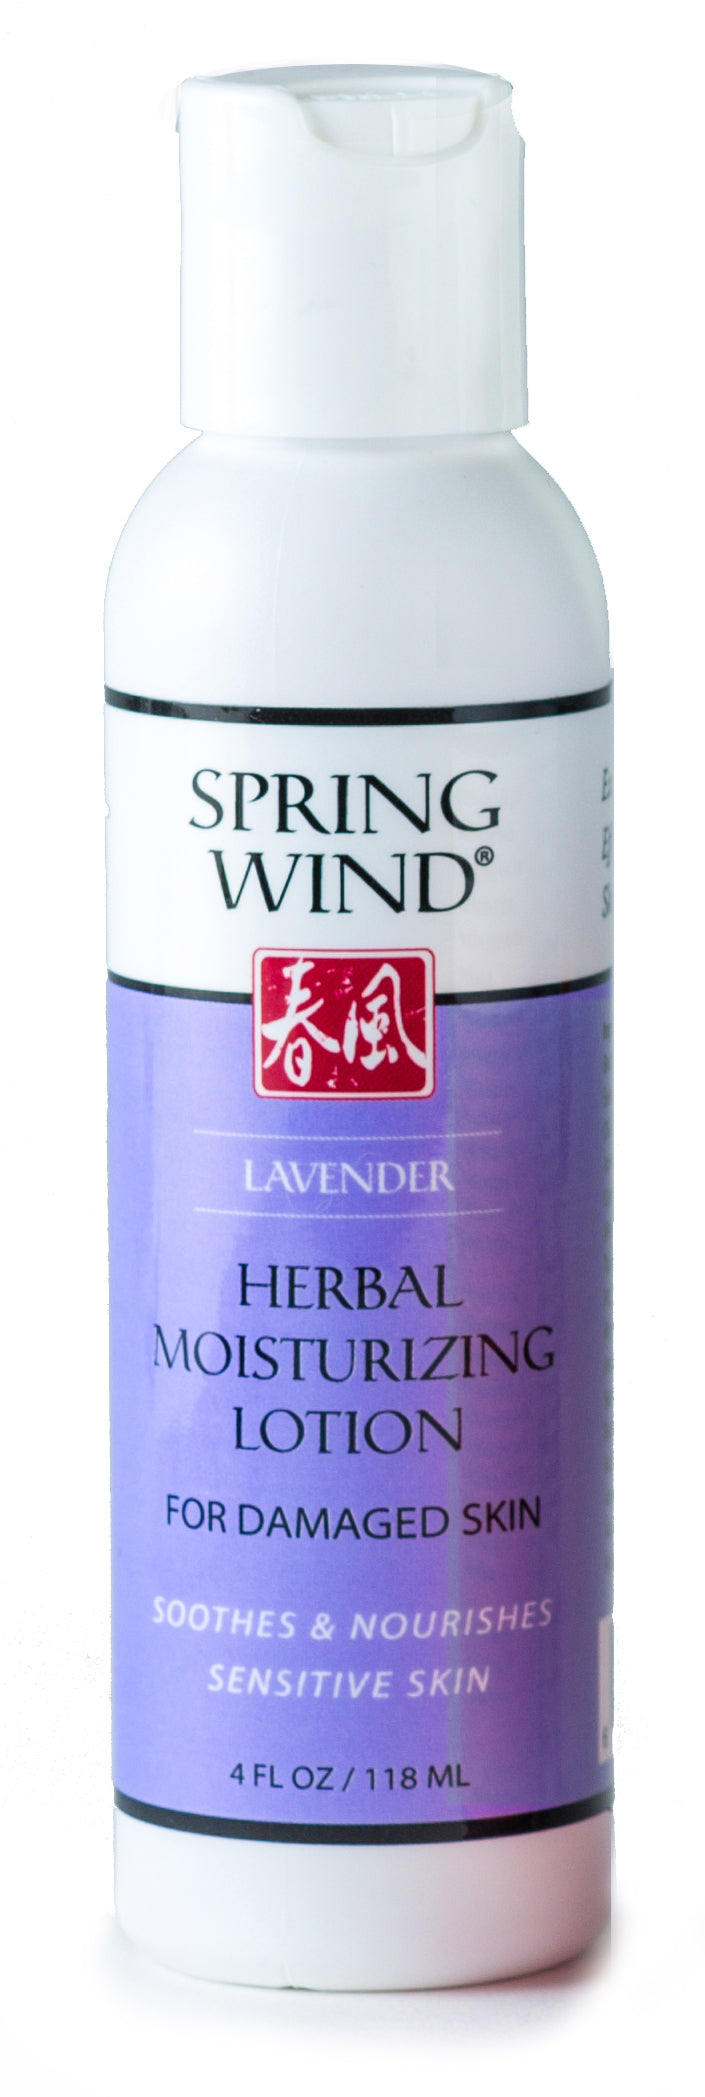 Herbal Moisturizing Lotion For Damaged and Dry Skin Spring Wind